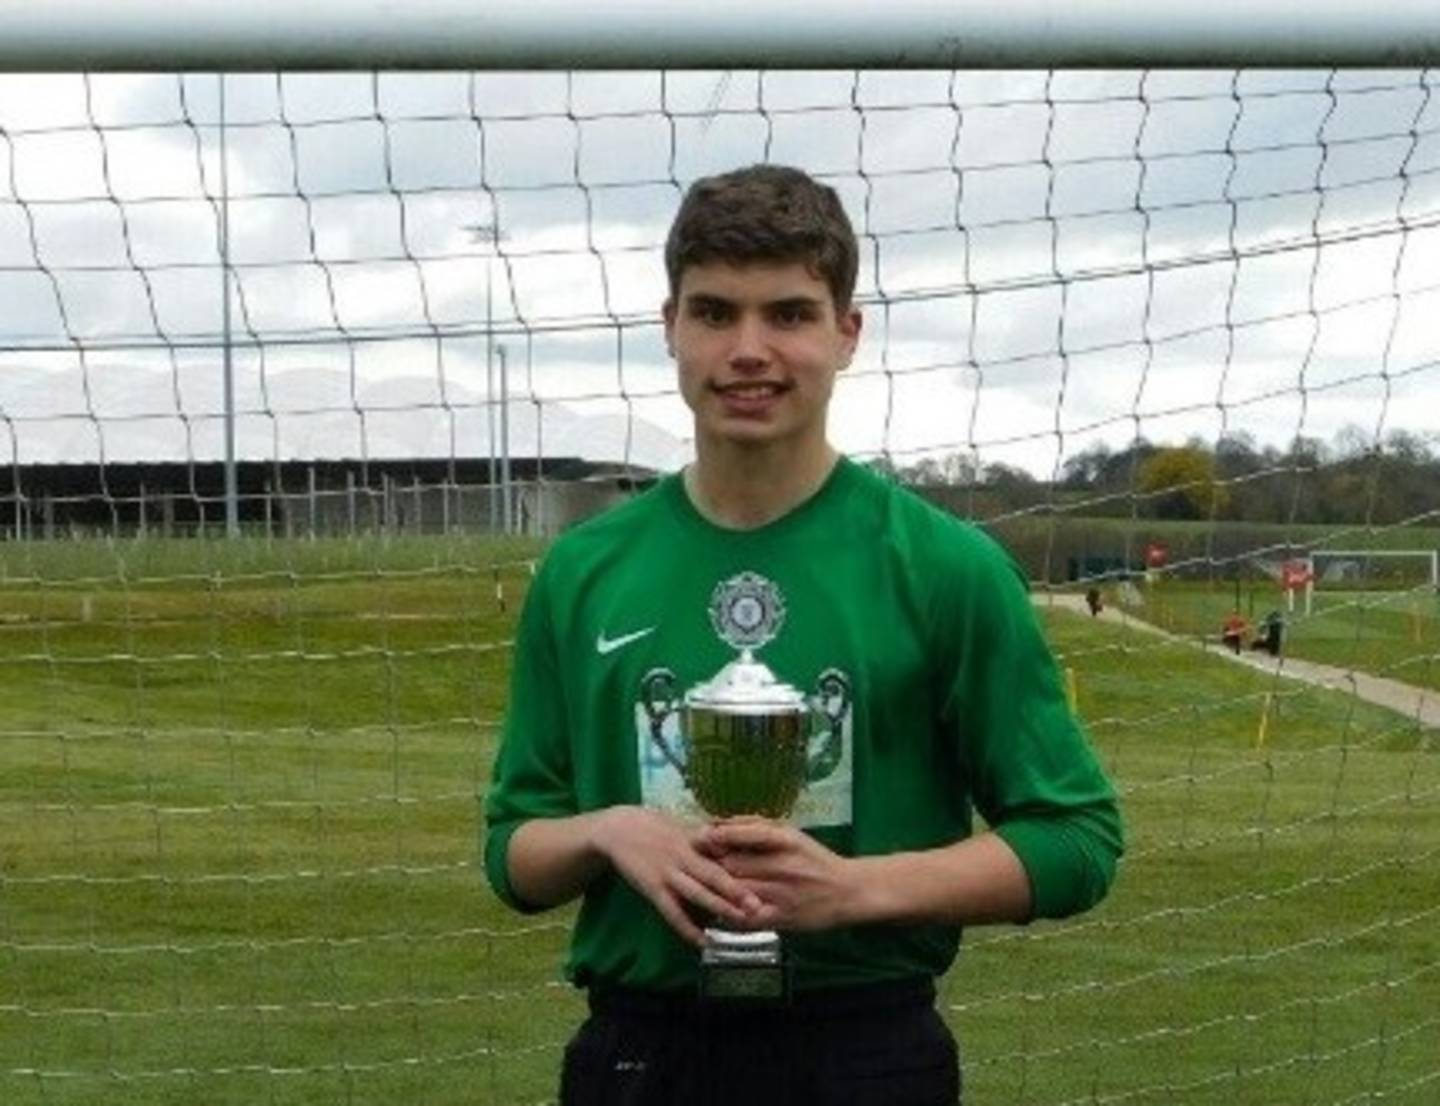 Ben Meadows in front of the net with a trophy